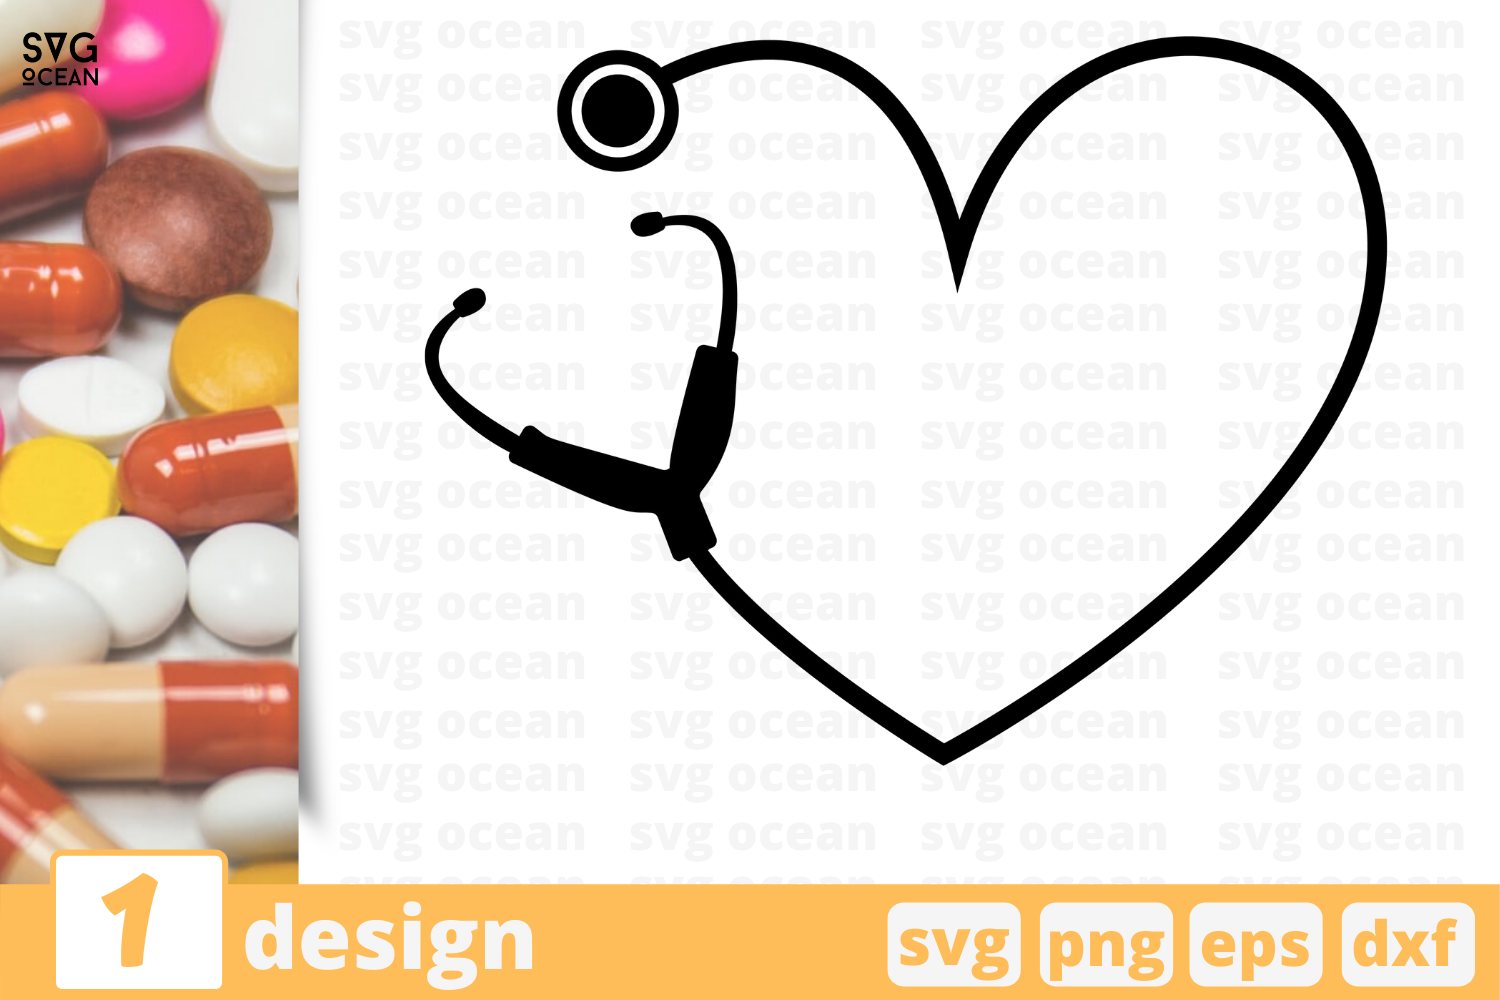 Download Free Heart Graphic By Svgocean Creative Fabrica for Cricut Explore, Silhouette and other cutting machines.